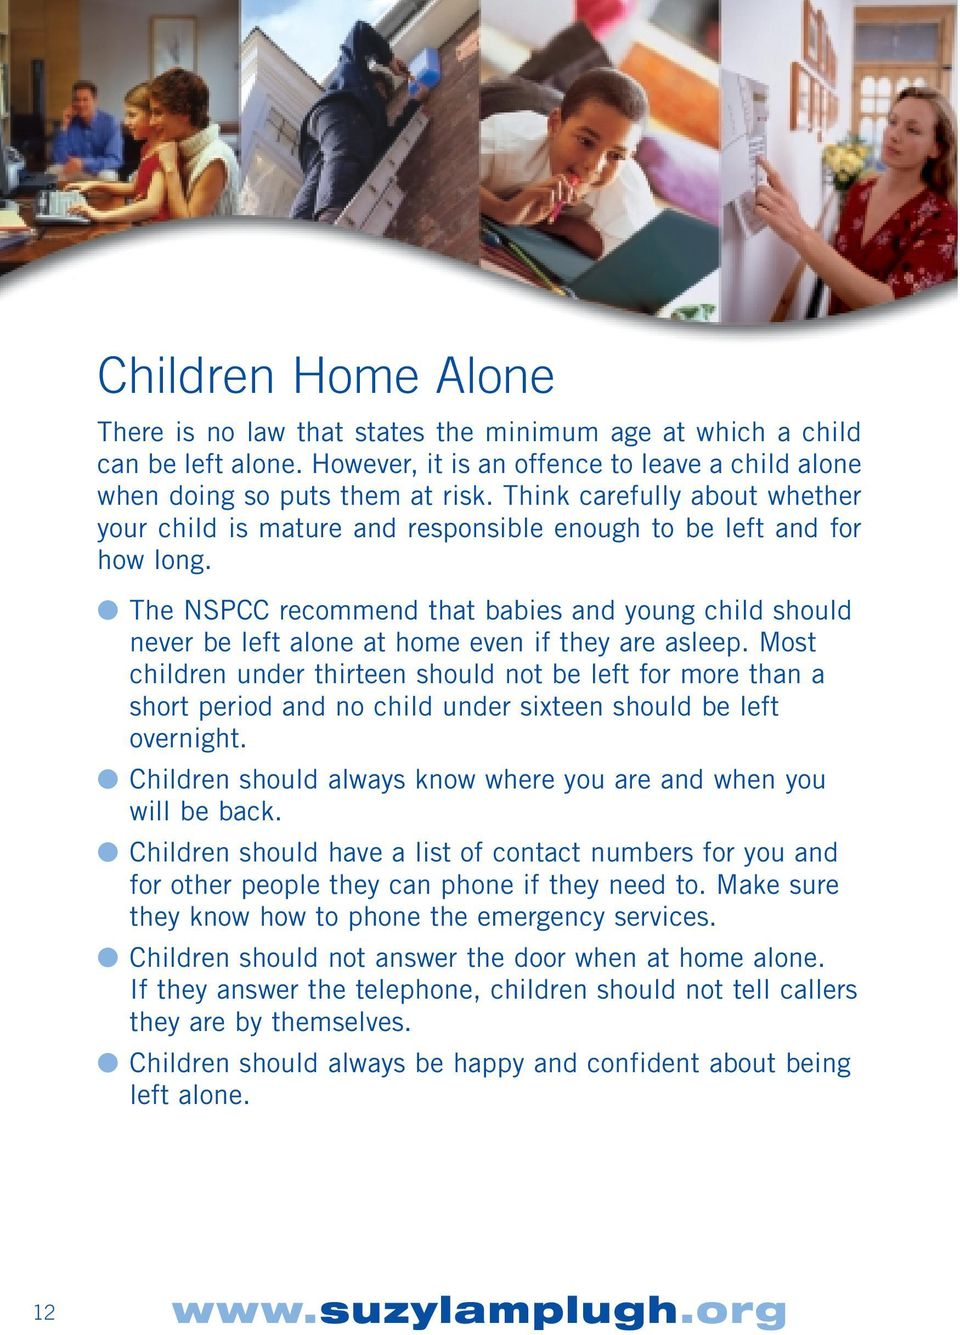 The NSPCC recommend that babies and young child should never be left alone at home even if they are asleep.